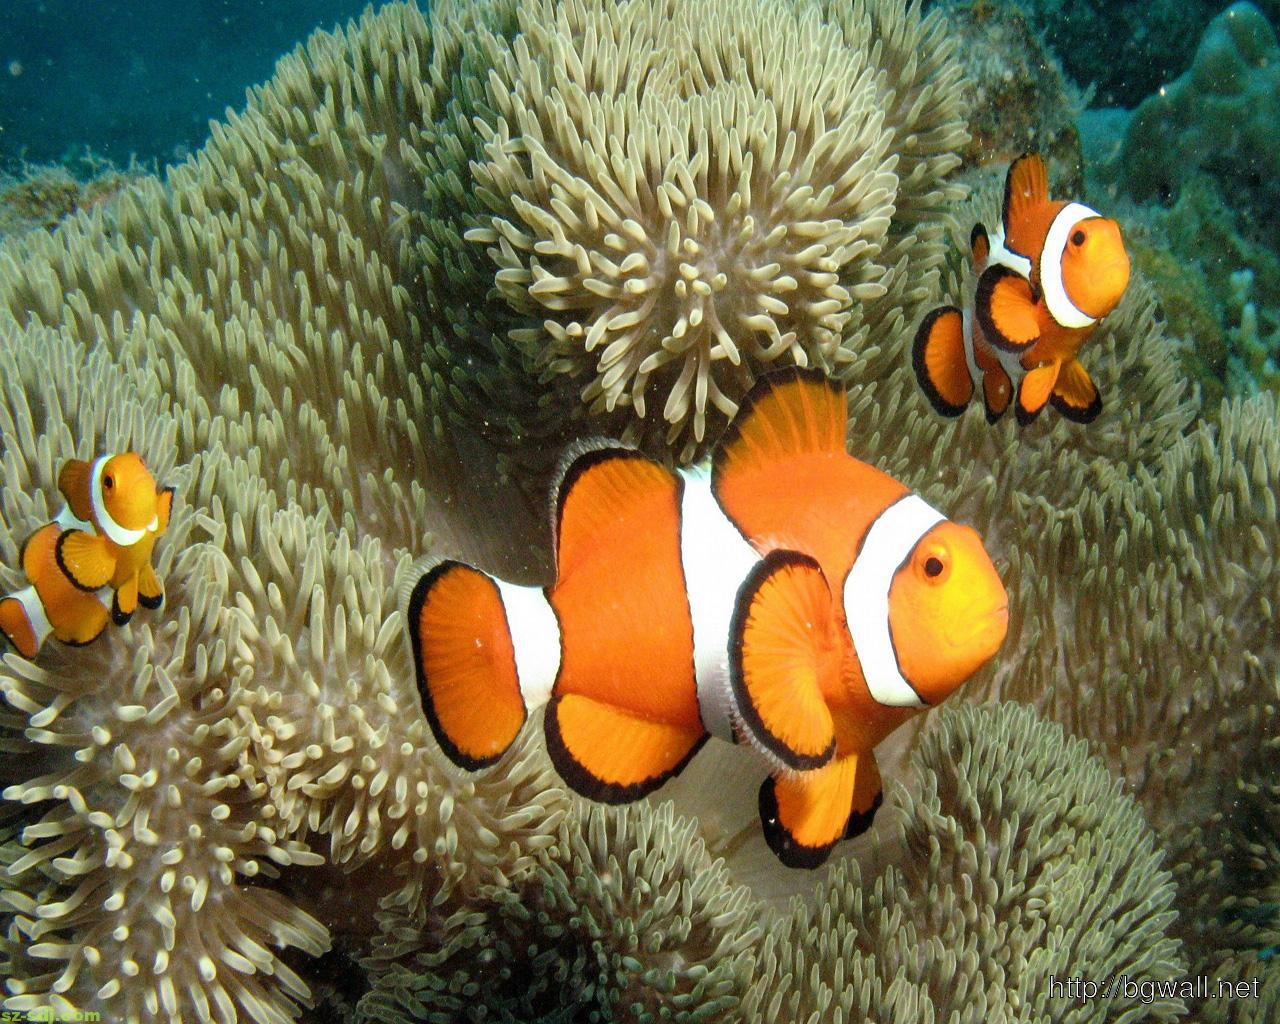 Cute Clown Fish Wallpaper Image Clown Fish HD